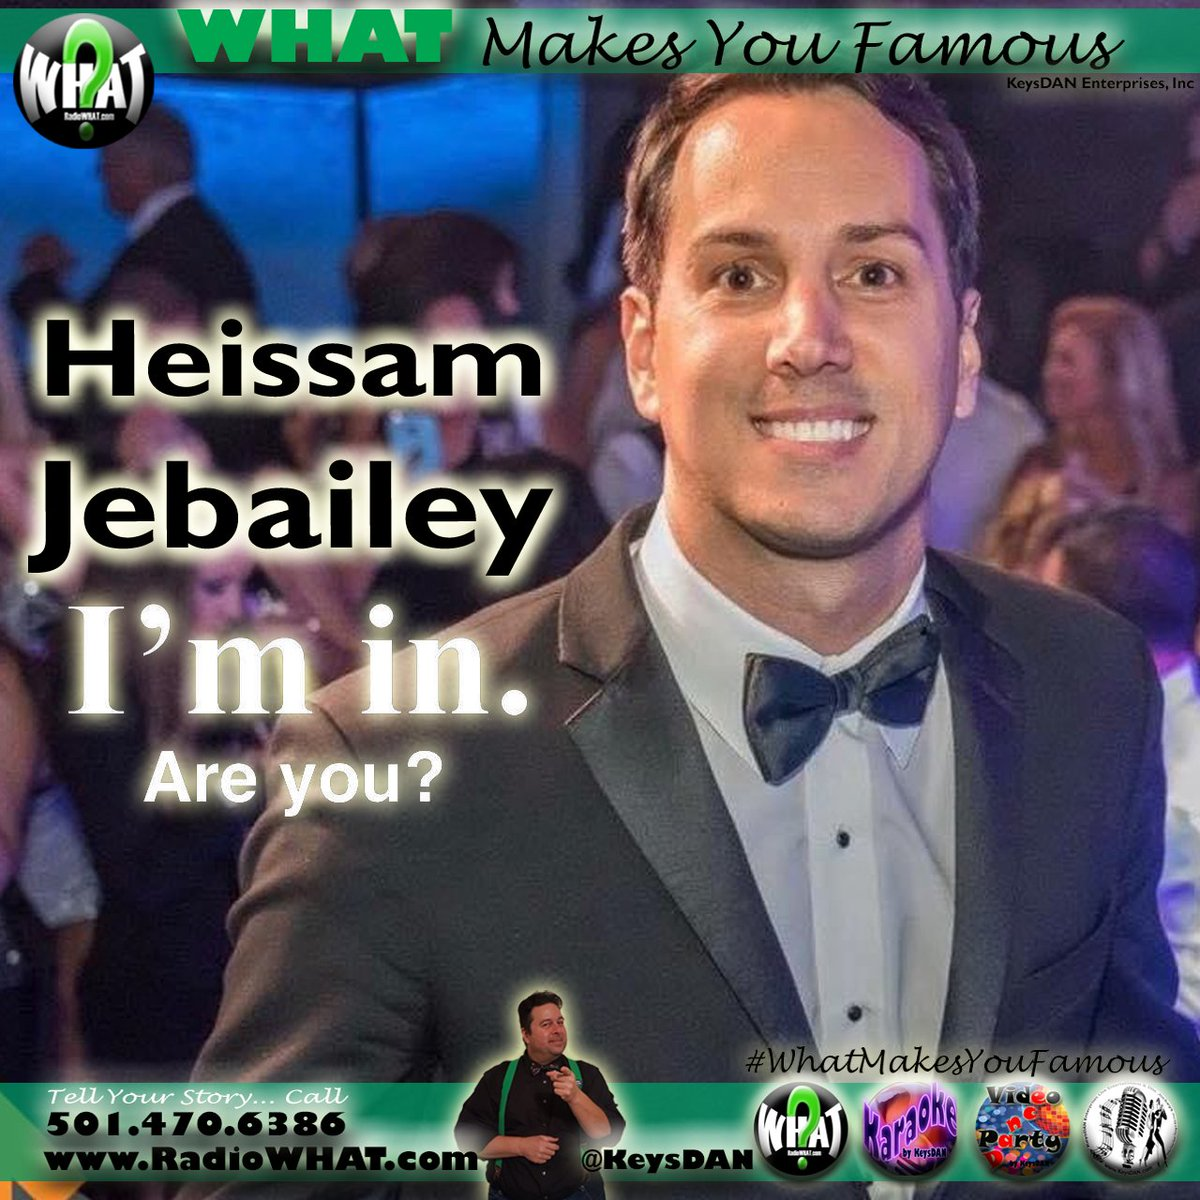 Heissam Jebailey (I'm in) #PODCAST #WhatMakesYouFamous @KeysDAN @imintoevents  #eventmanager #eventplanner #eventmanagement #events #event #eventplanning #weddingplanner #eventprofs #corporateevents #eventdesign #eventdecor #eventcoordinator #wedding